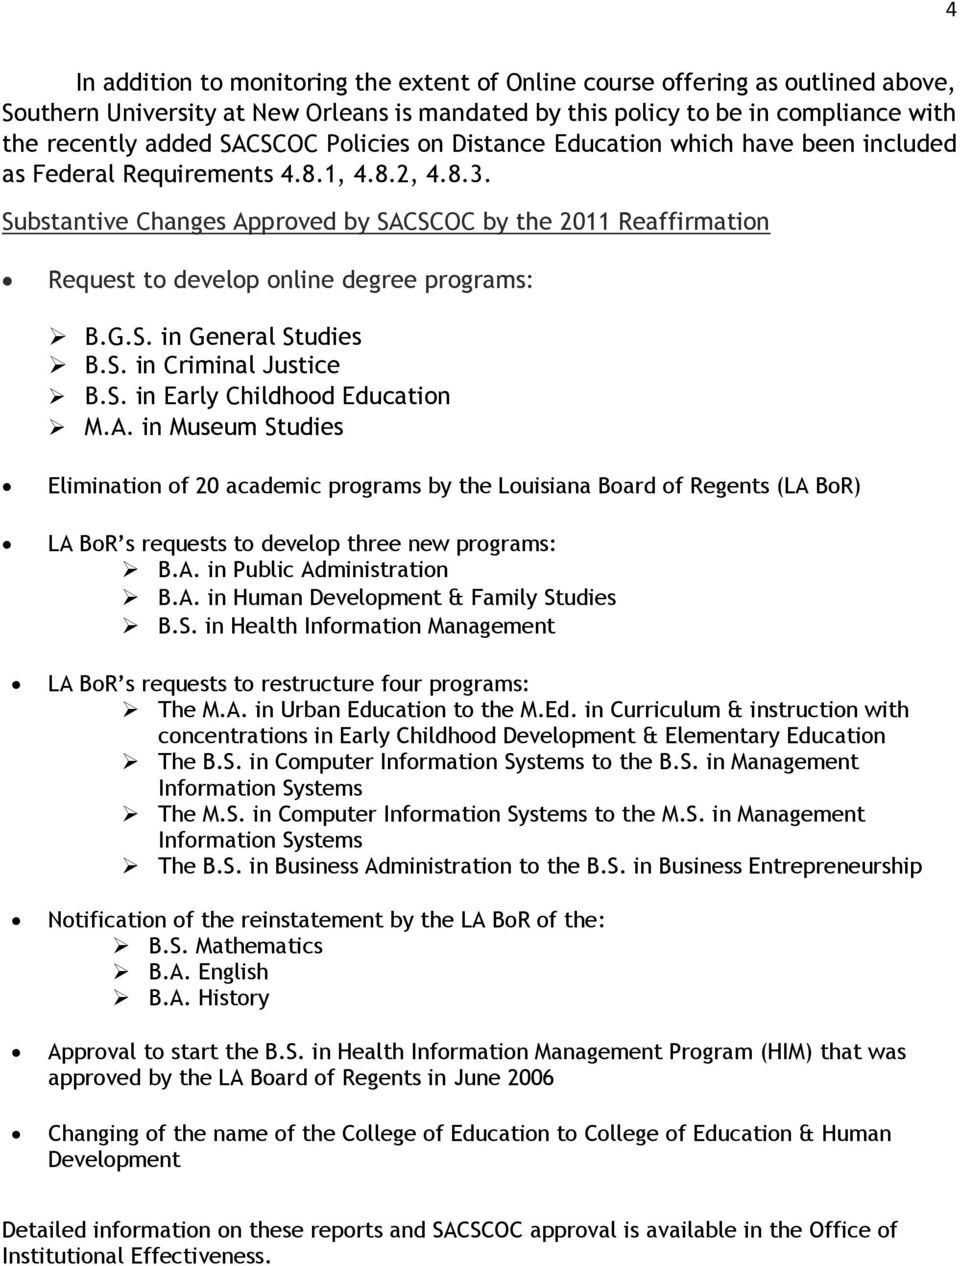 Substantive Changes Approved by SACSCOC by the 2011 Reaffirmation Request to develop online degree programs: B.G.S. in General Studies B.S. in Criminal Justice B.S. in Early Childhood Education M.A. in Museum Studies Elimination of 20 academic programs by the Louisiana Board of Regents (LA BoR) LA BoR s requests to develop three new programs: B.